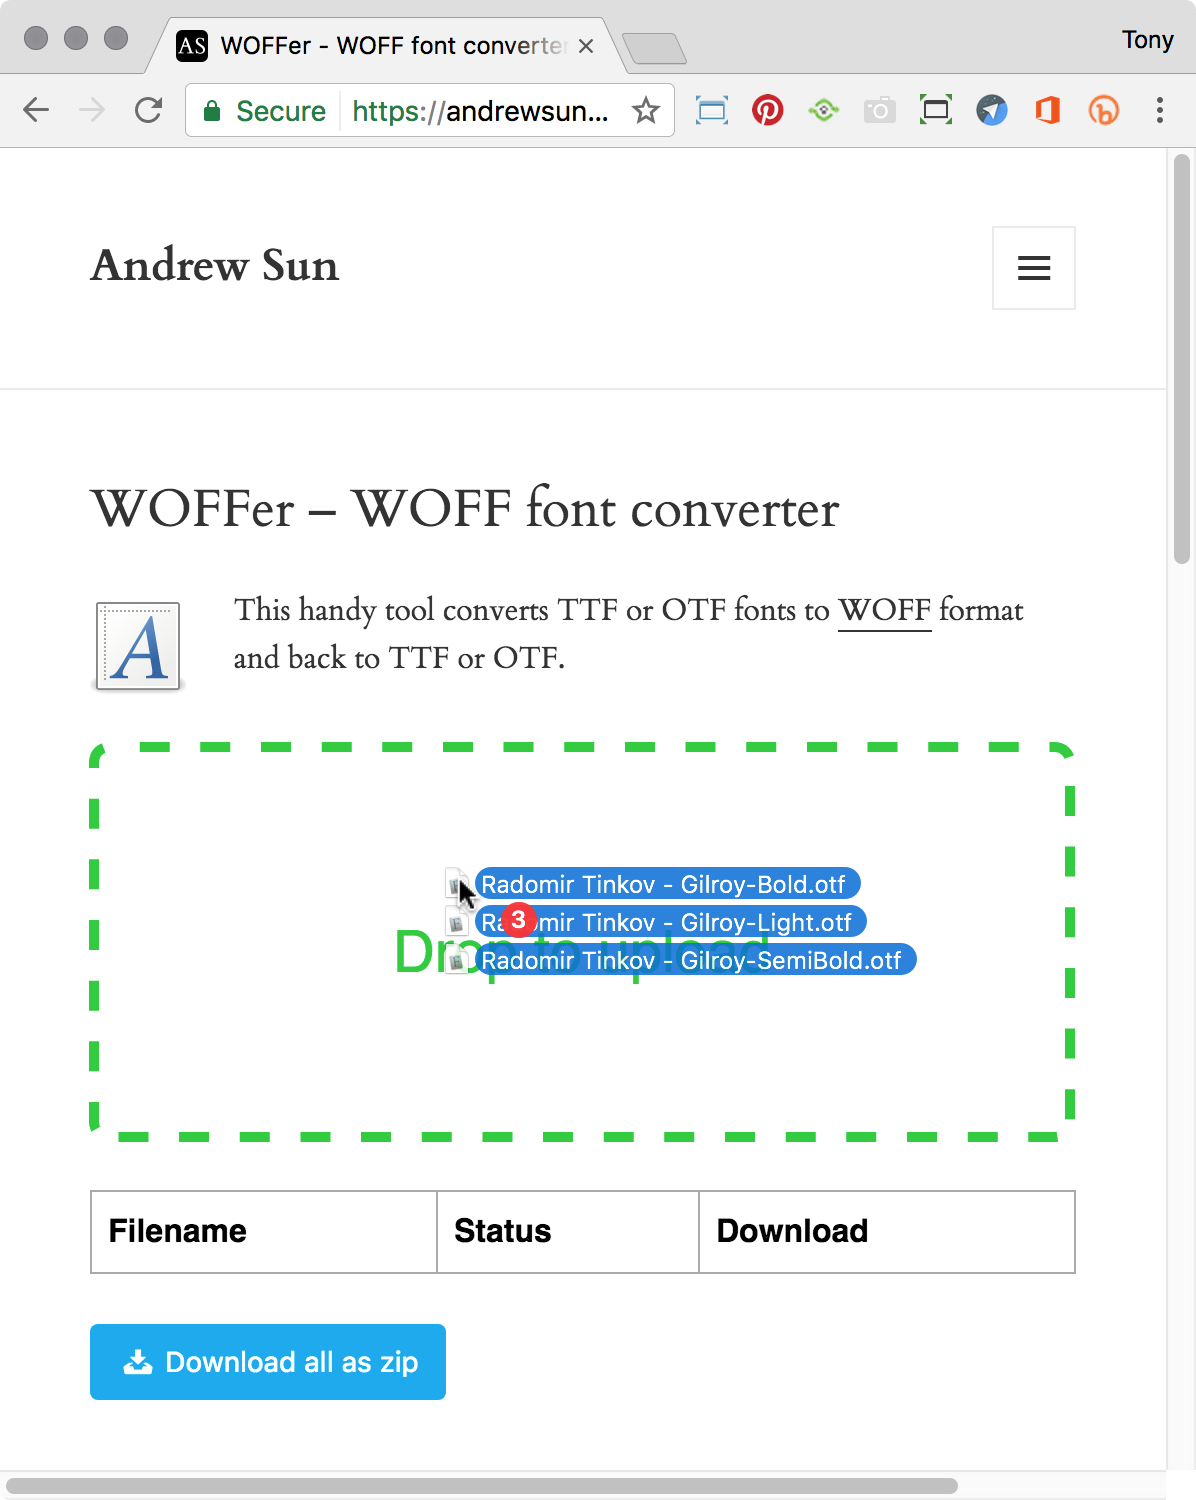 Drag and drop your font files onto the window